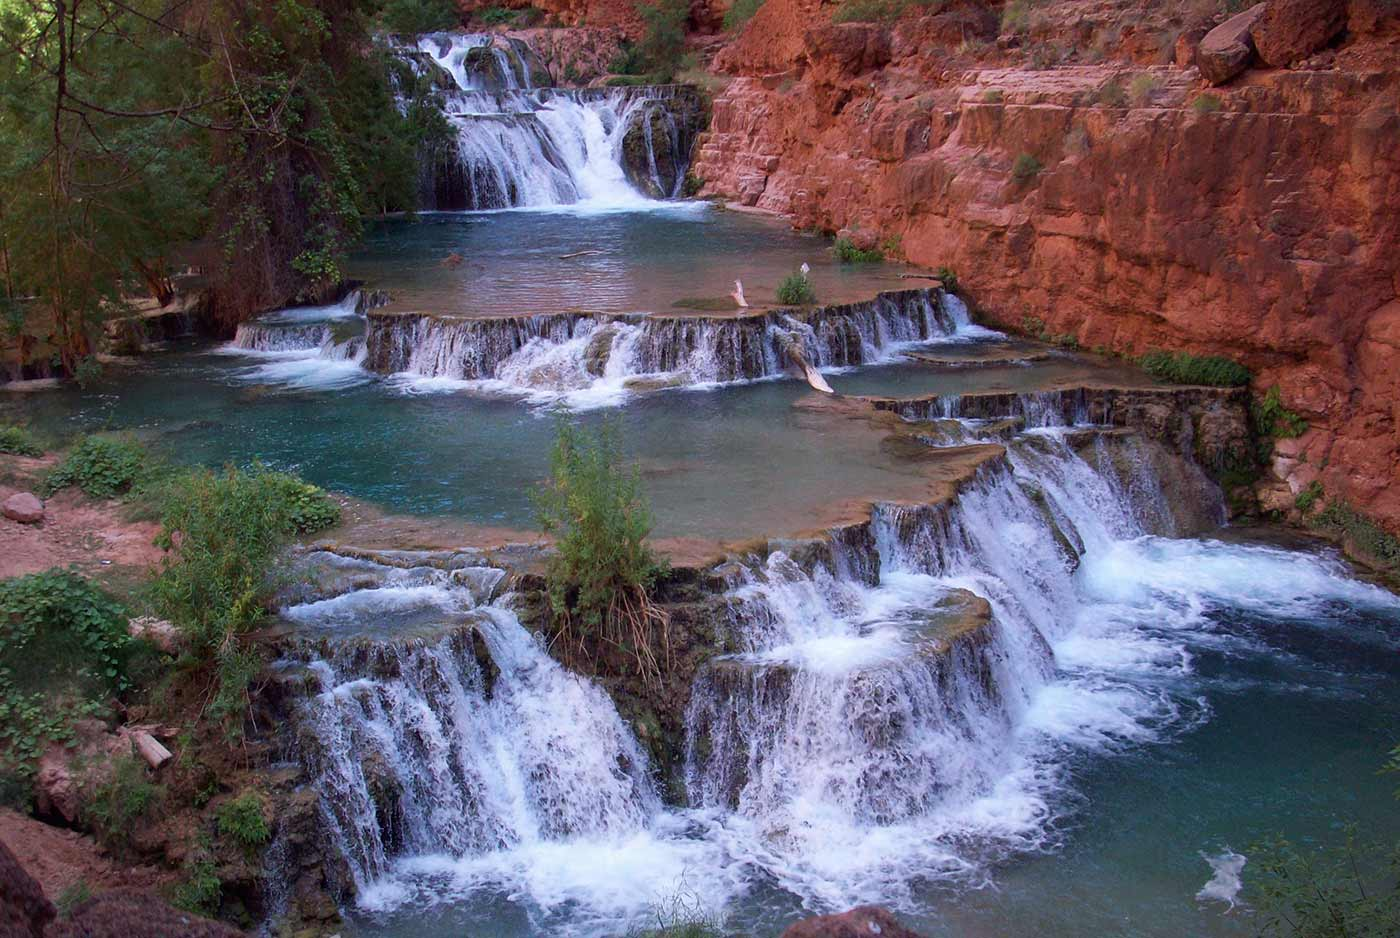 Beaver Falls in the Havasupai reservation in the Grand Canyon.